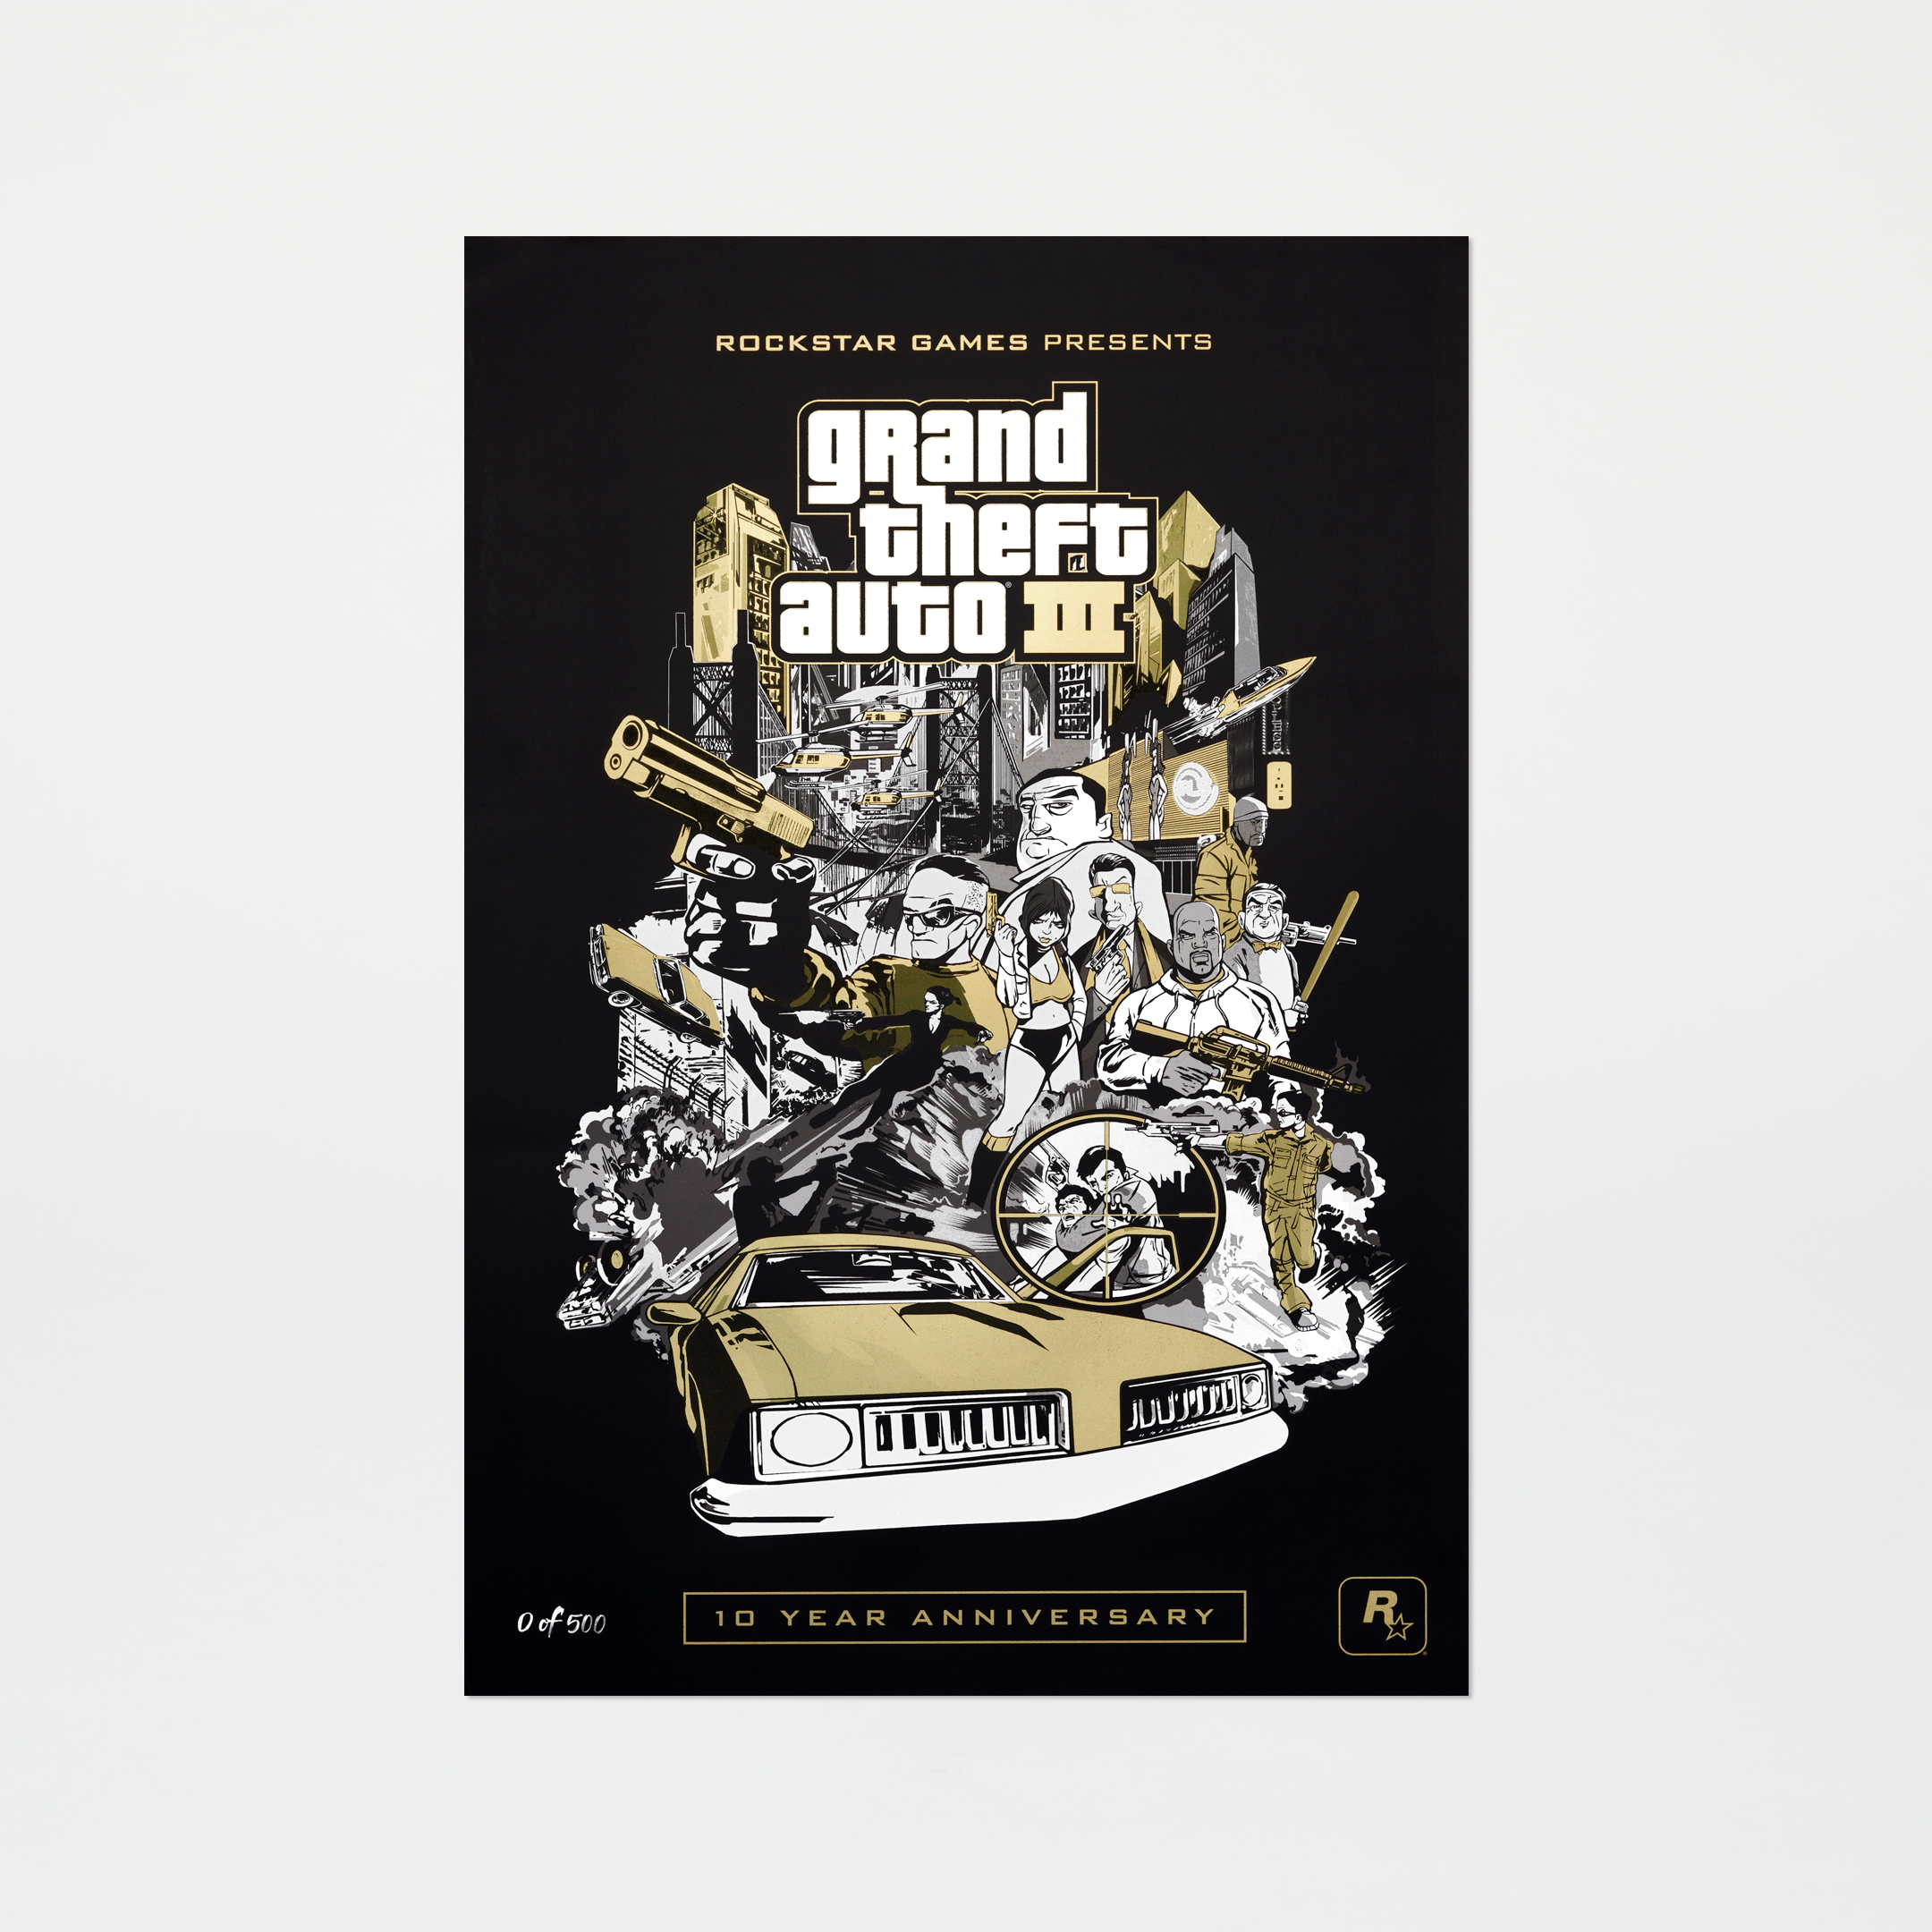 GTAIII Anniversary Limited-Edition EU Cover Lithograph